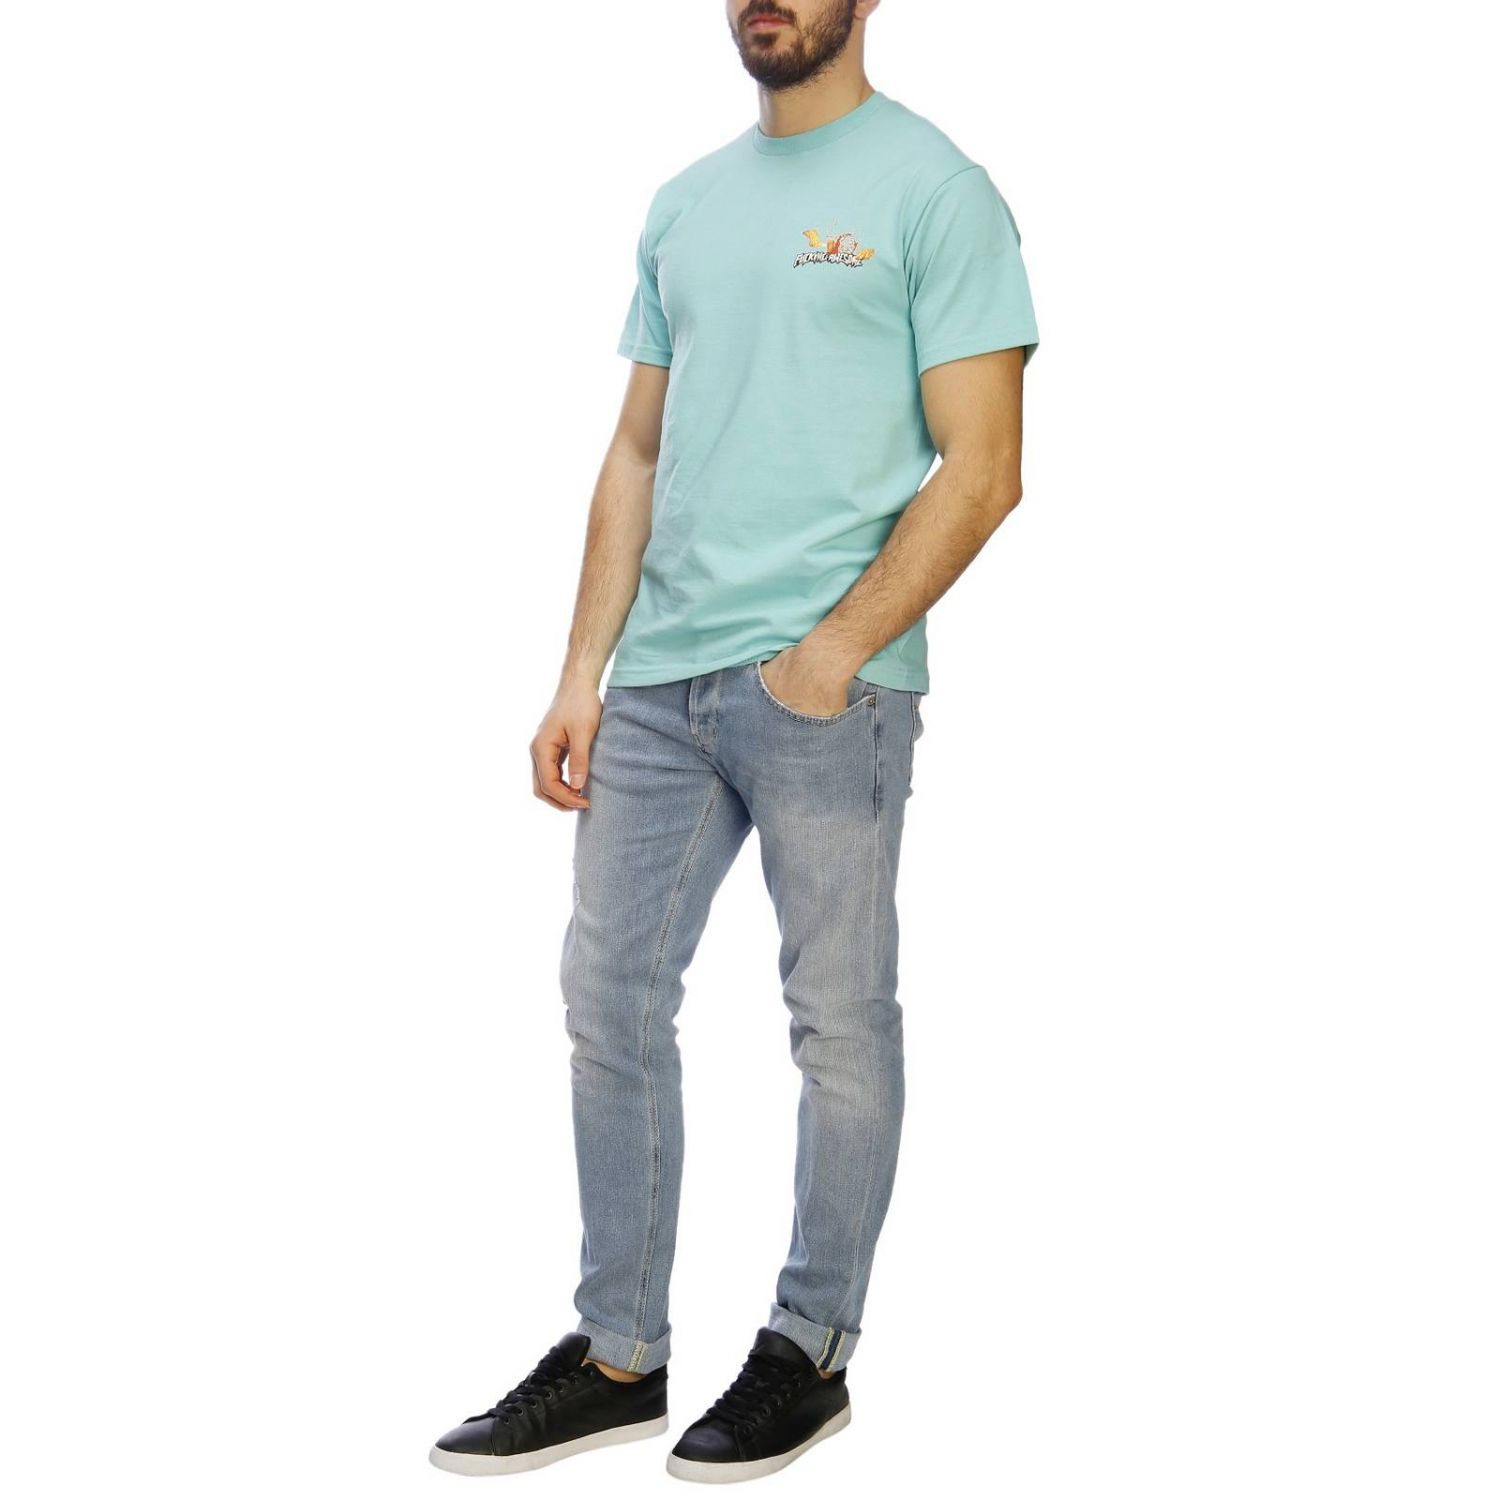 Camiseta hombre Fucking Awesome menta 4